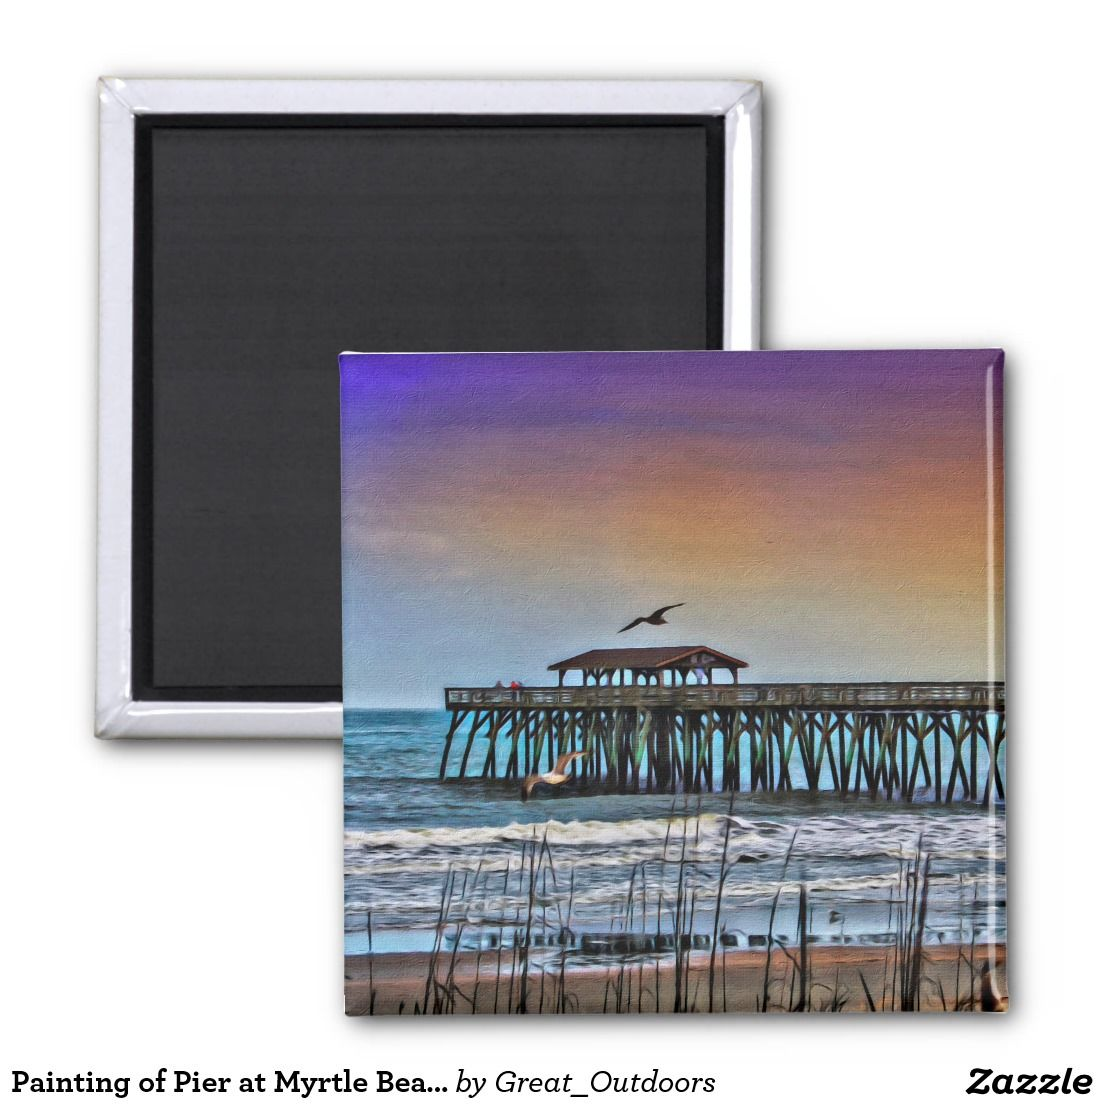 Painting of Pier at Myrtle Beach